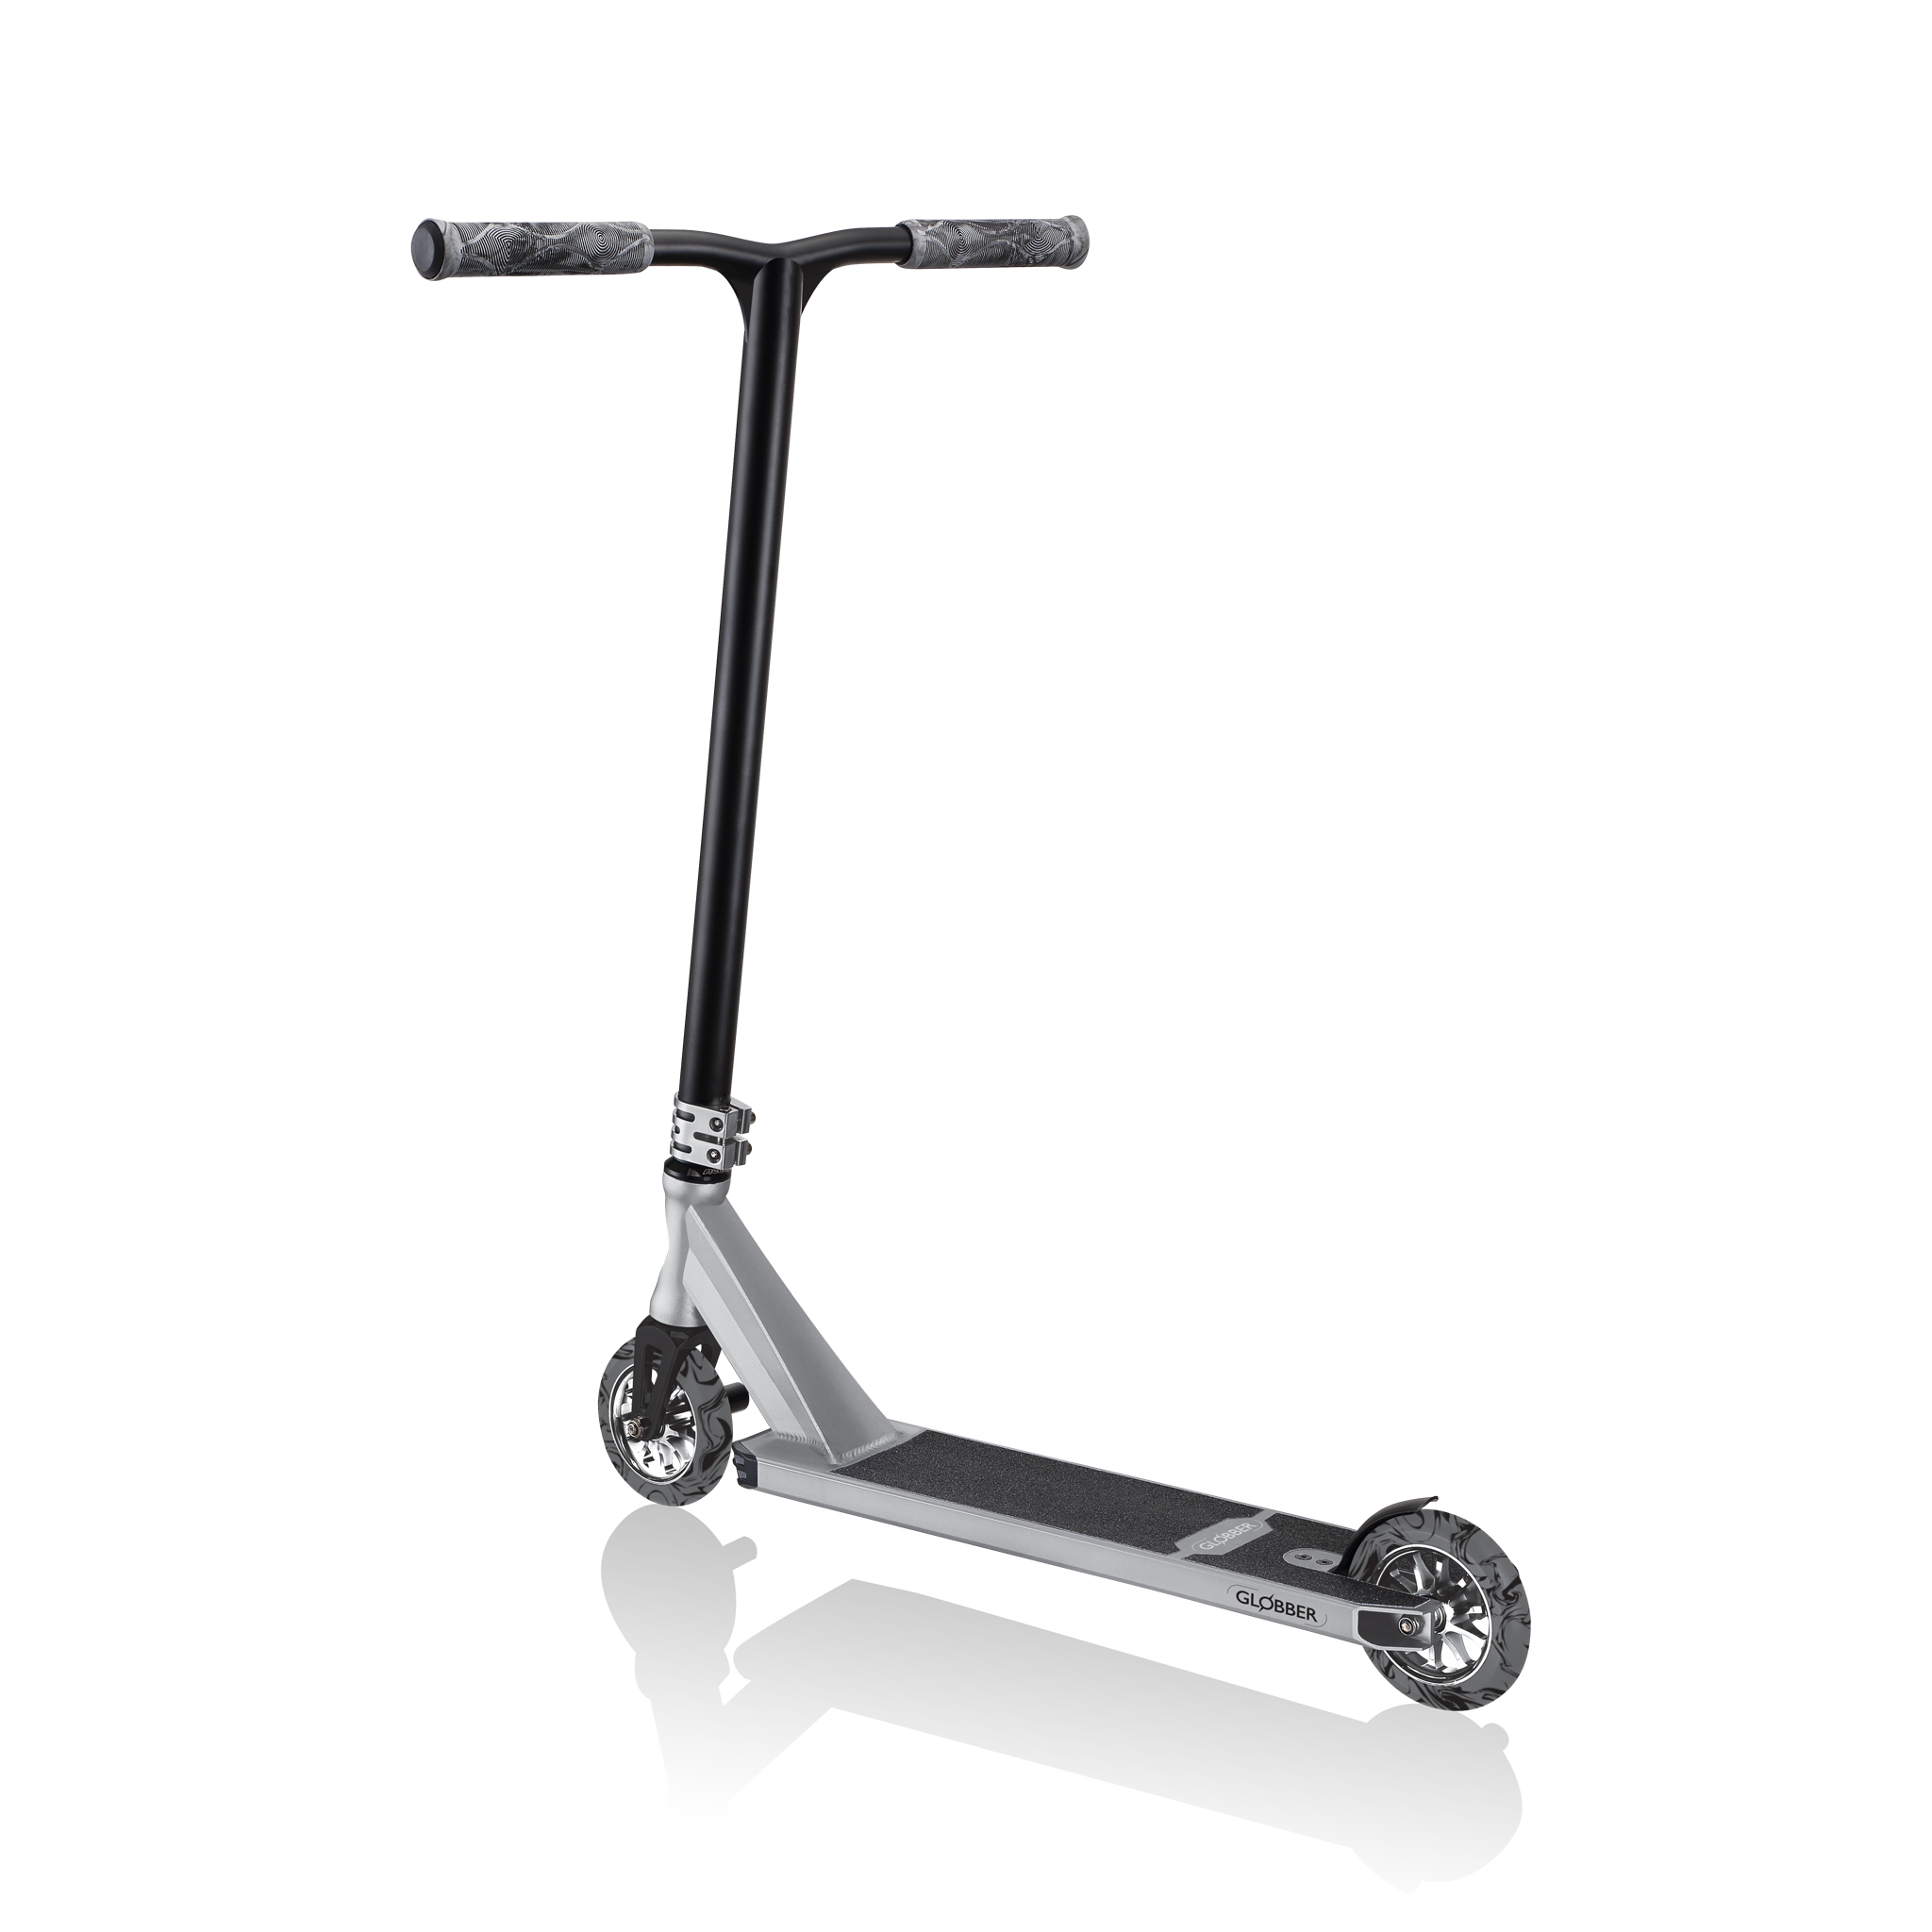 long-and-wide-stunt-scooter-t-bar-Globber-GS900 3